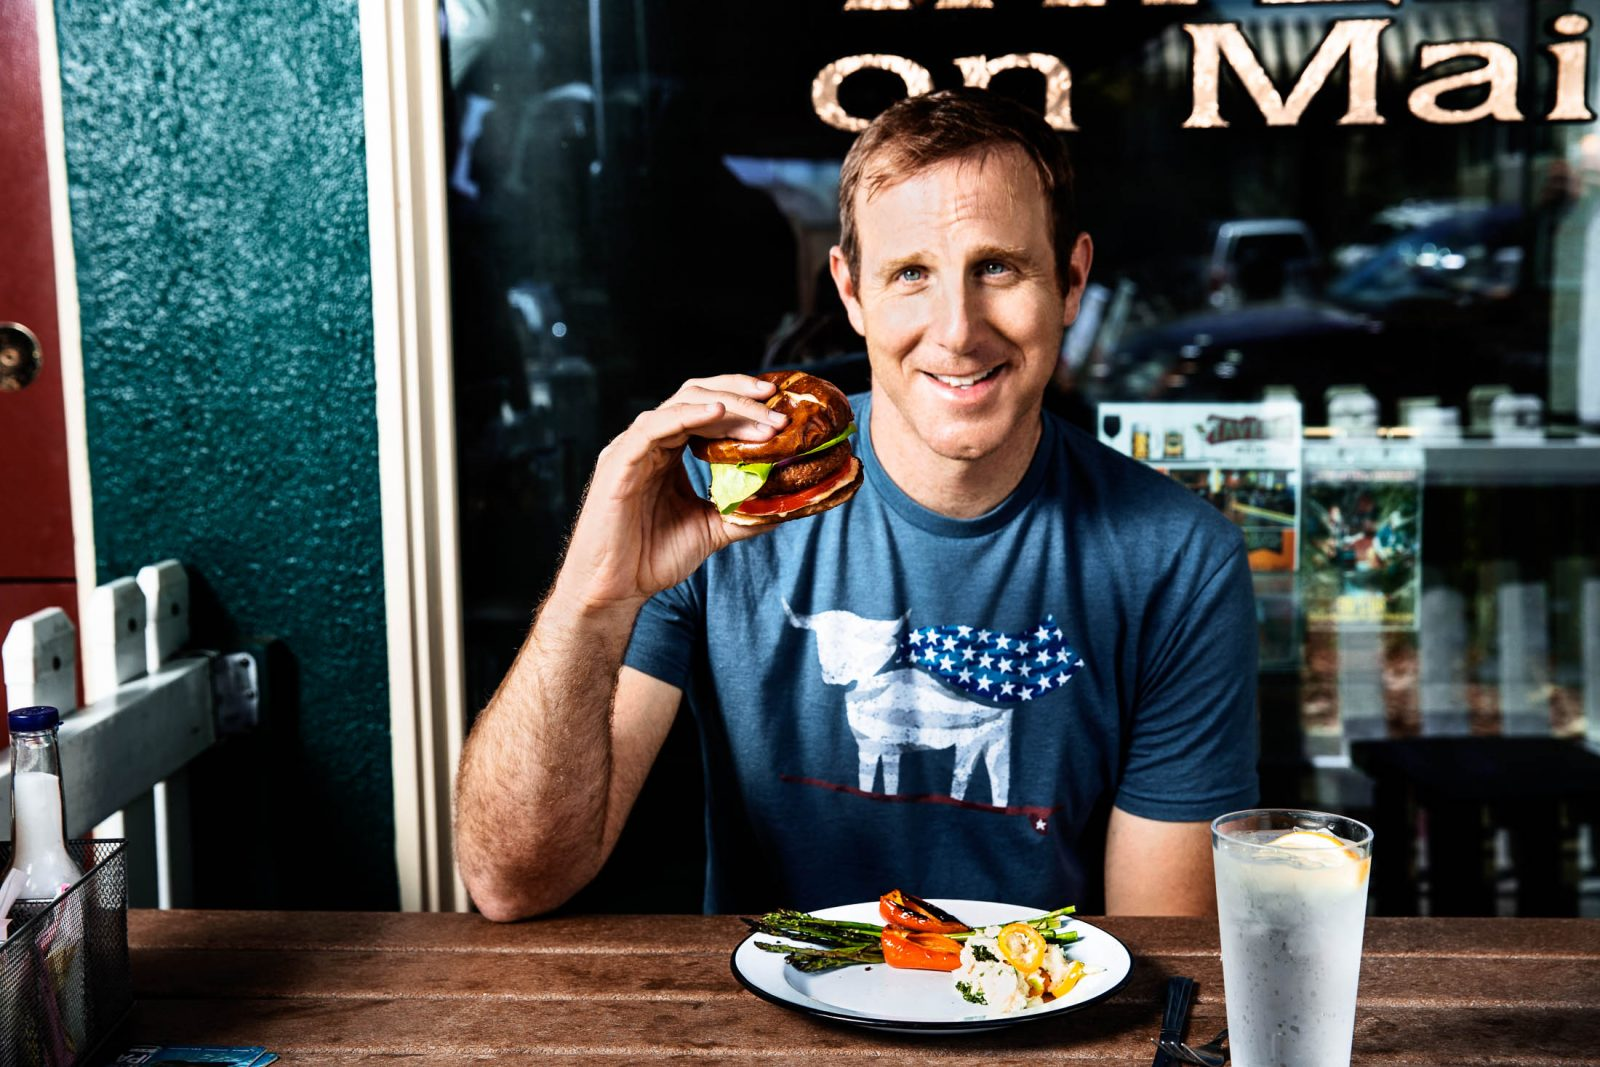 Let Them Eat Meat! Ethan Brown of Beyond Meat on Redefining Meat Using Plants